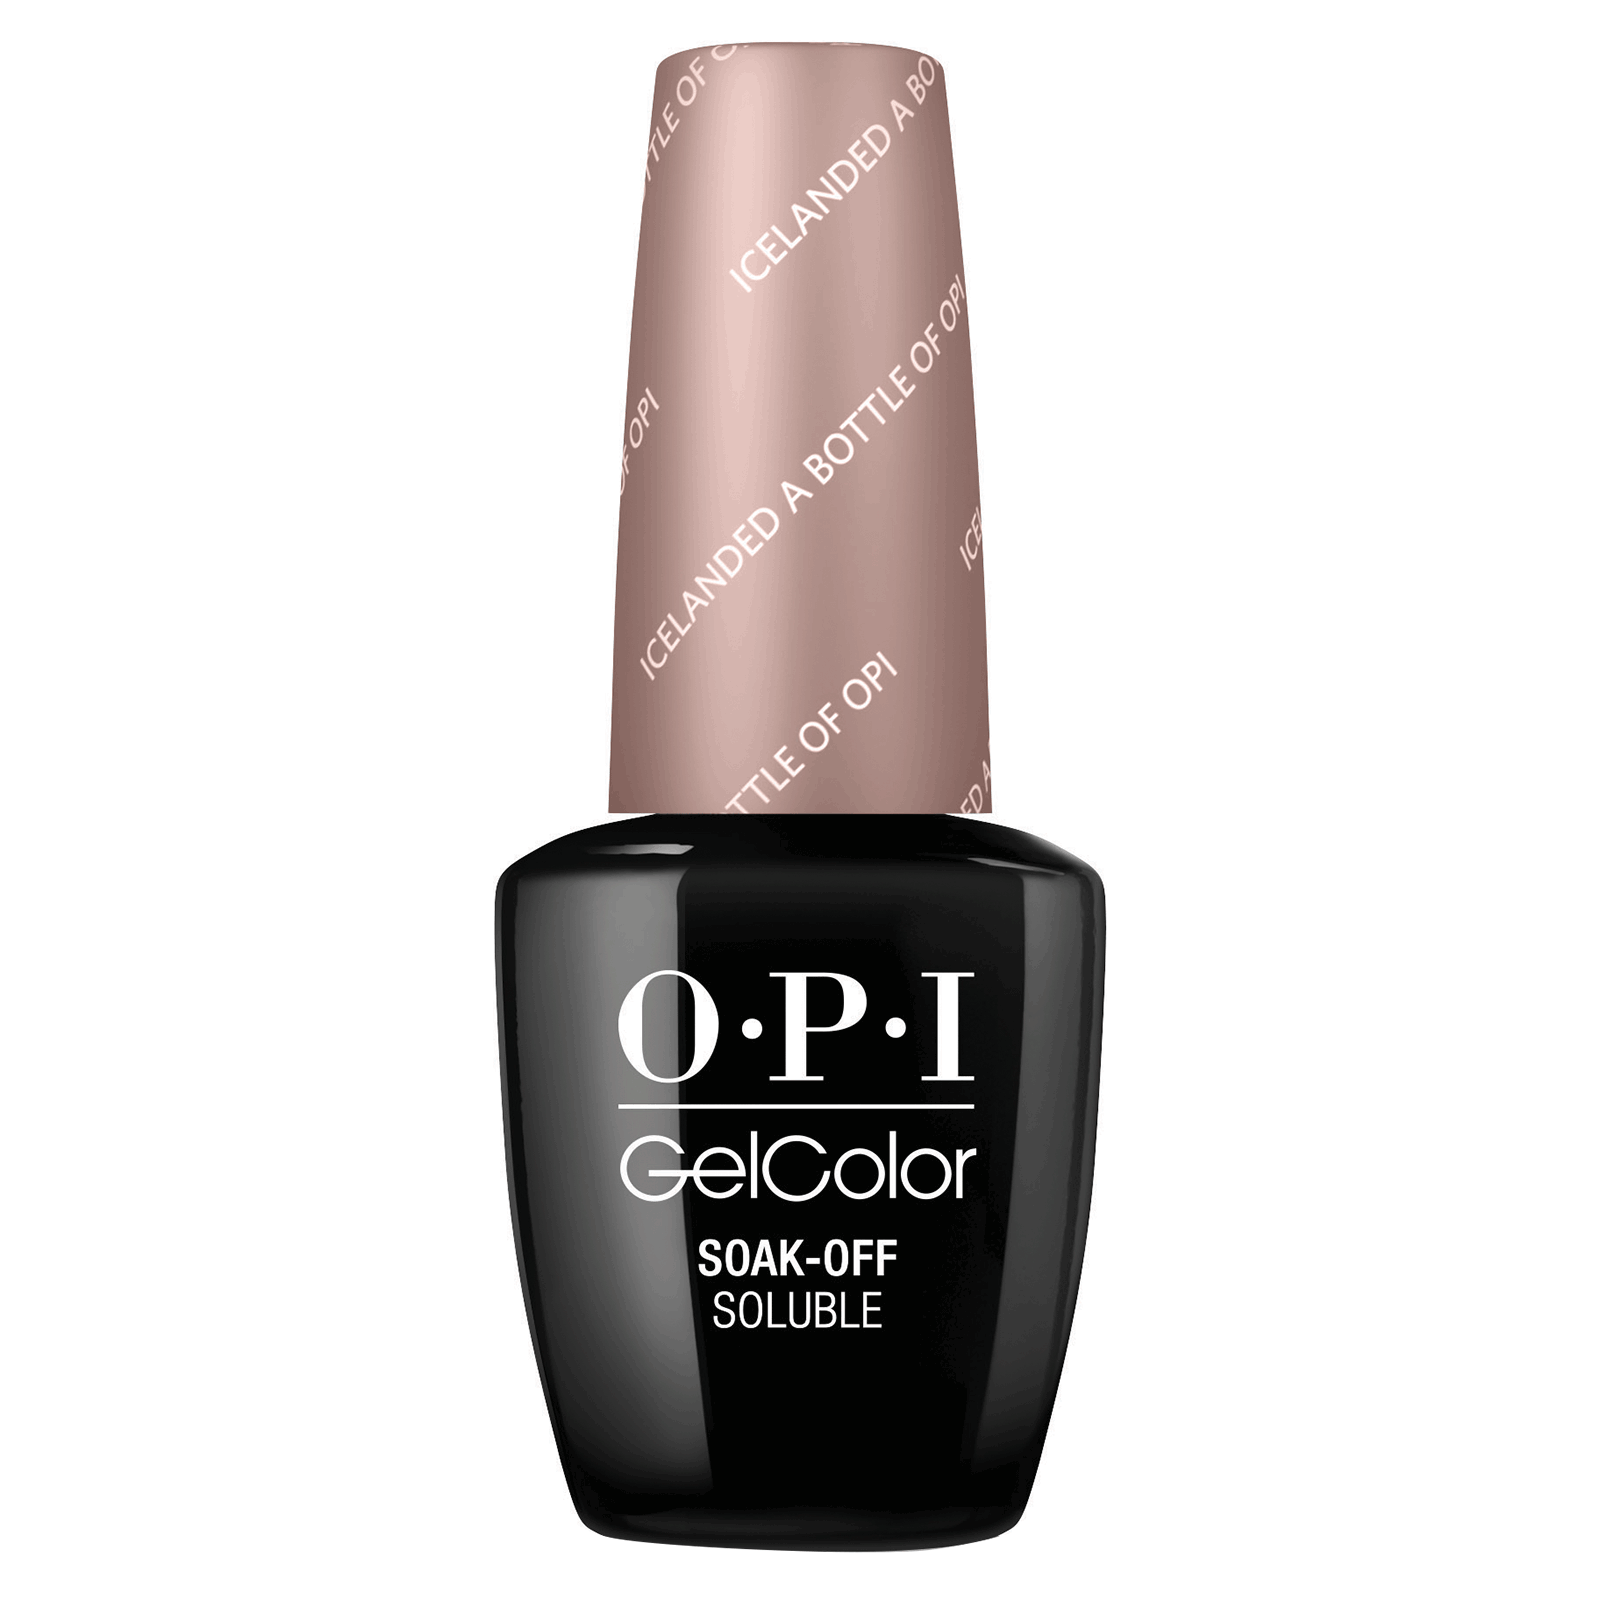 OPI Gelcolor - Icelanded a Bottle of OPI